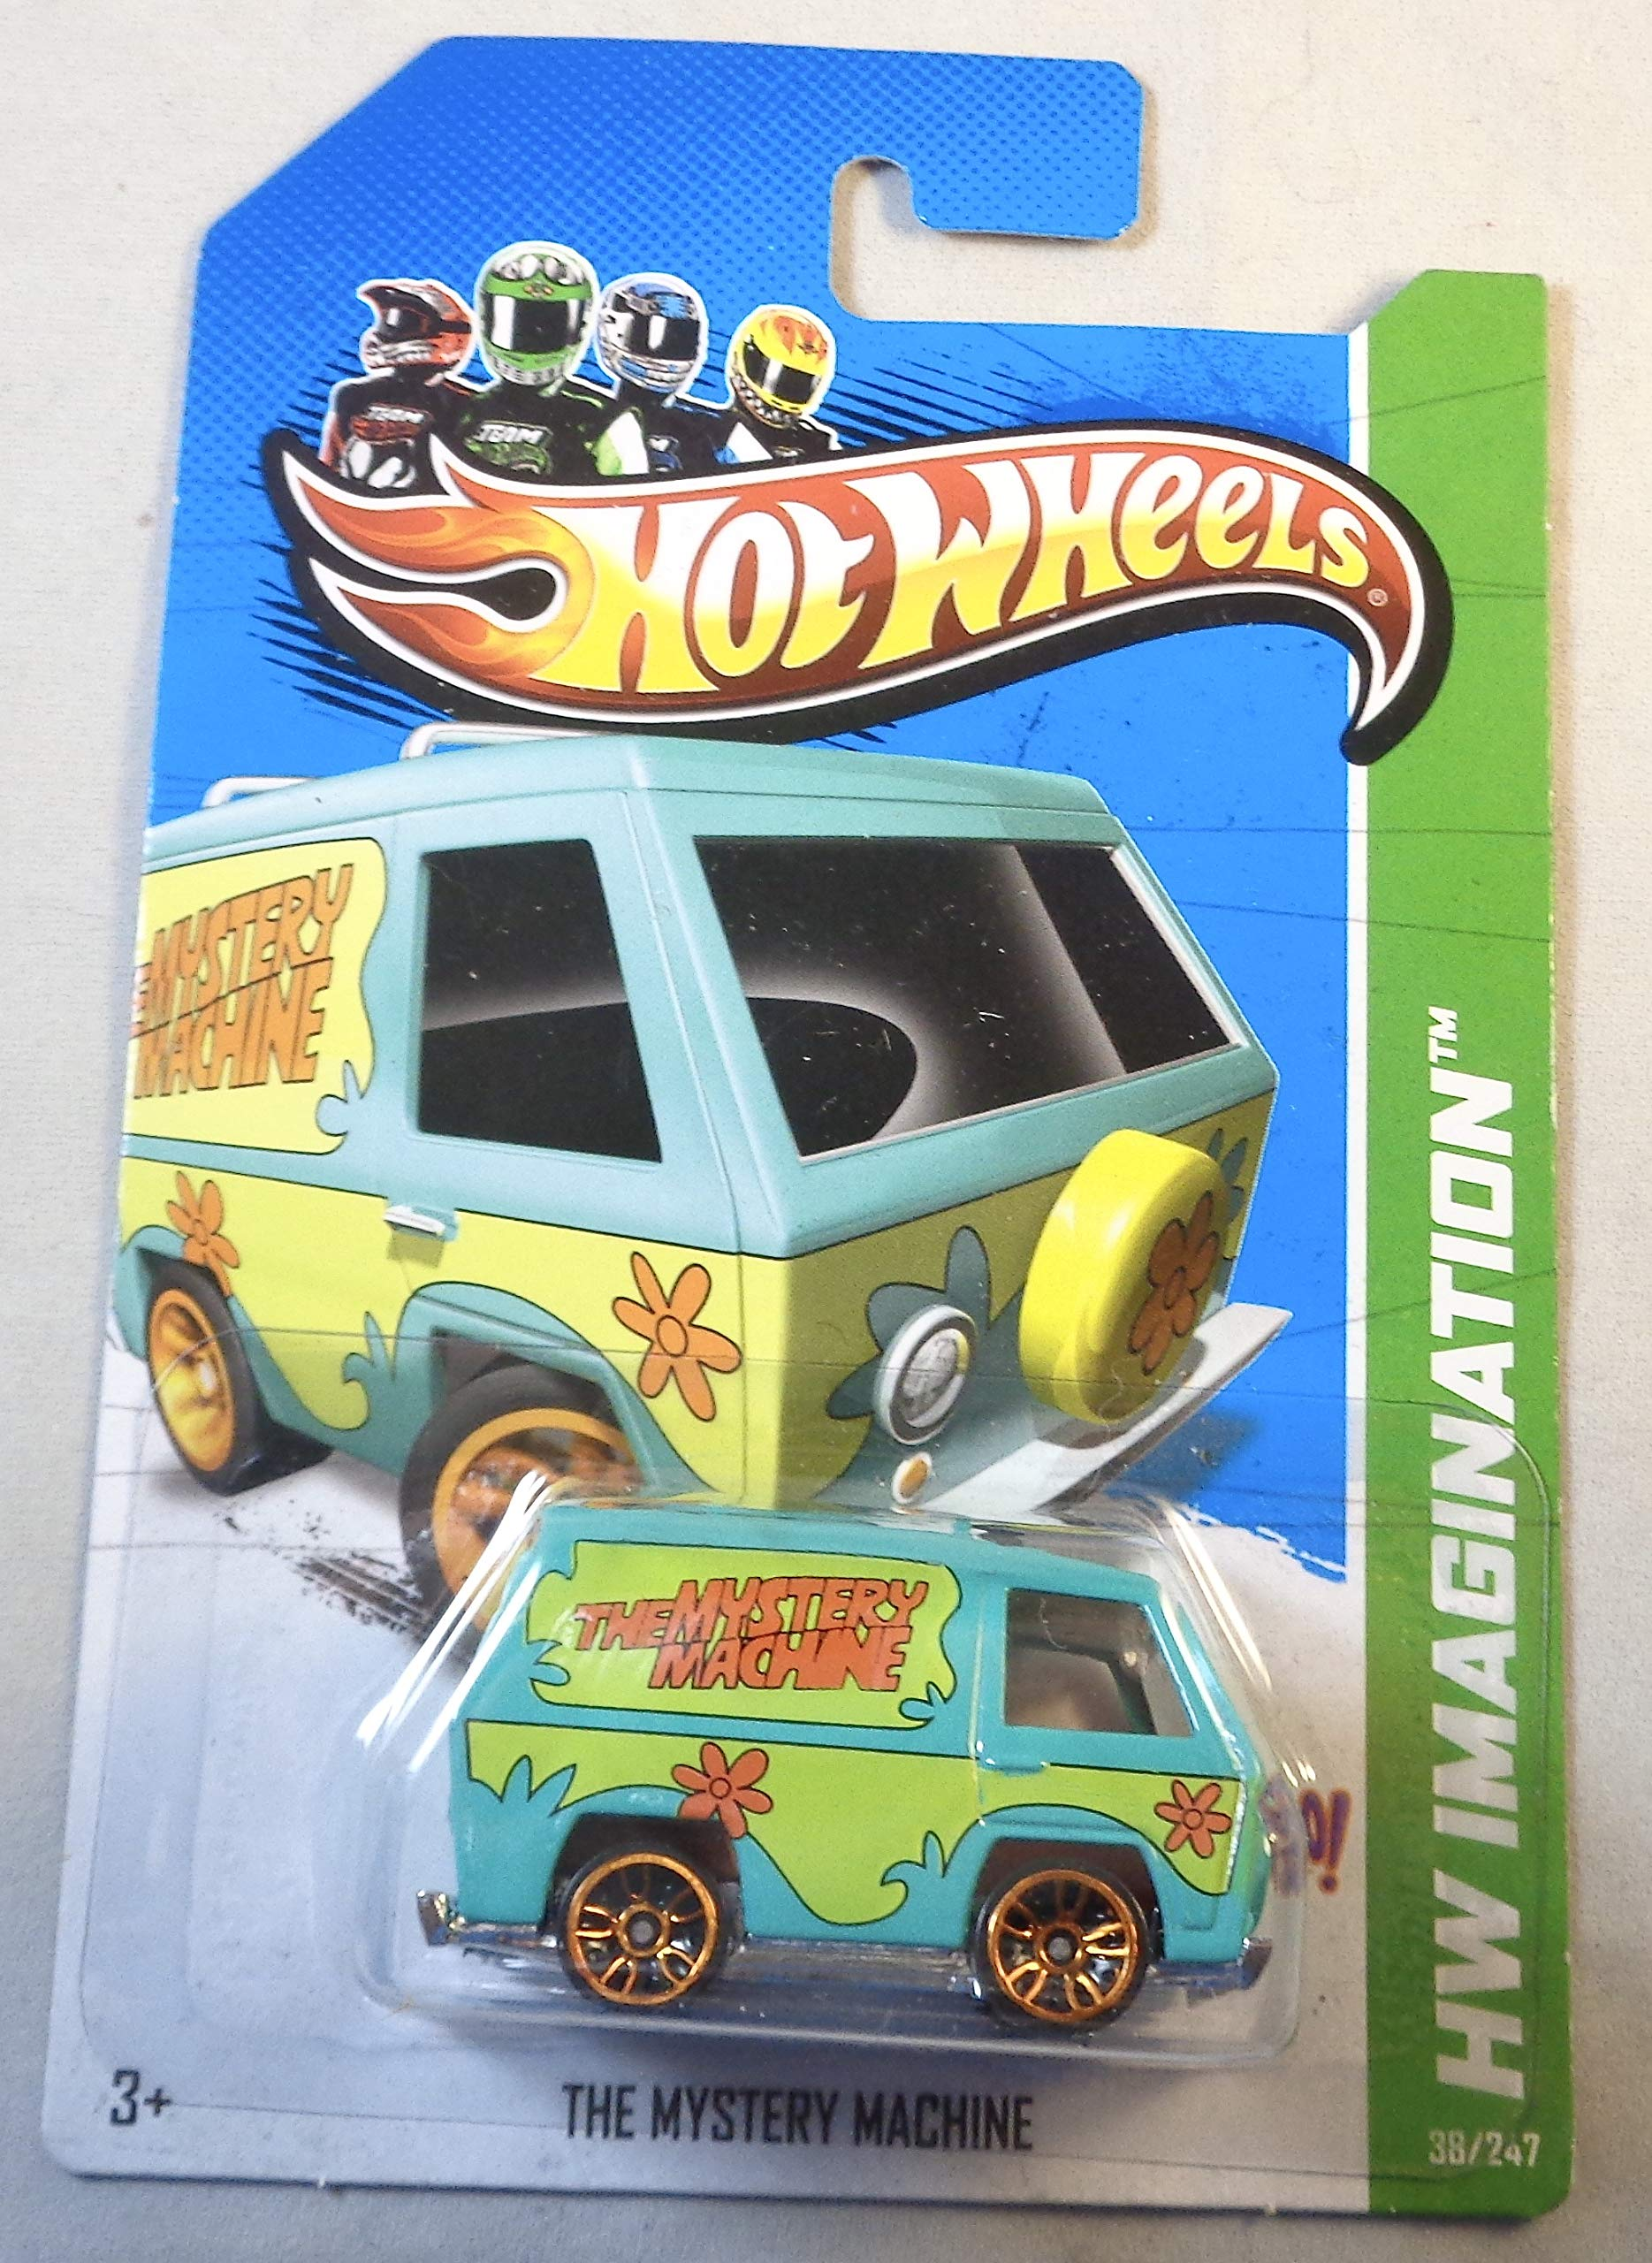 Hot Wheels, 2012 HW Imagination, Scooby Doo! La máquina misteriosa verde 38/247